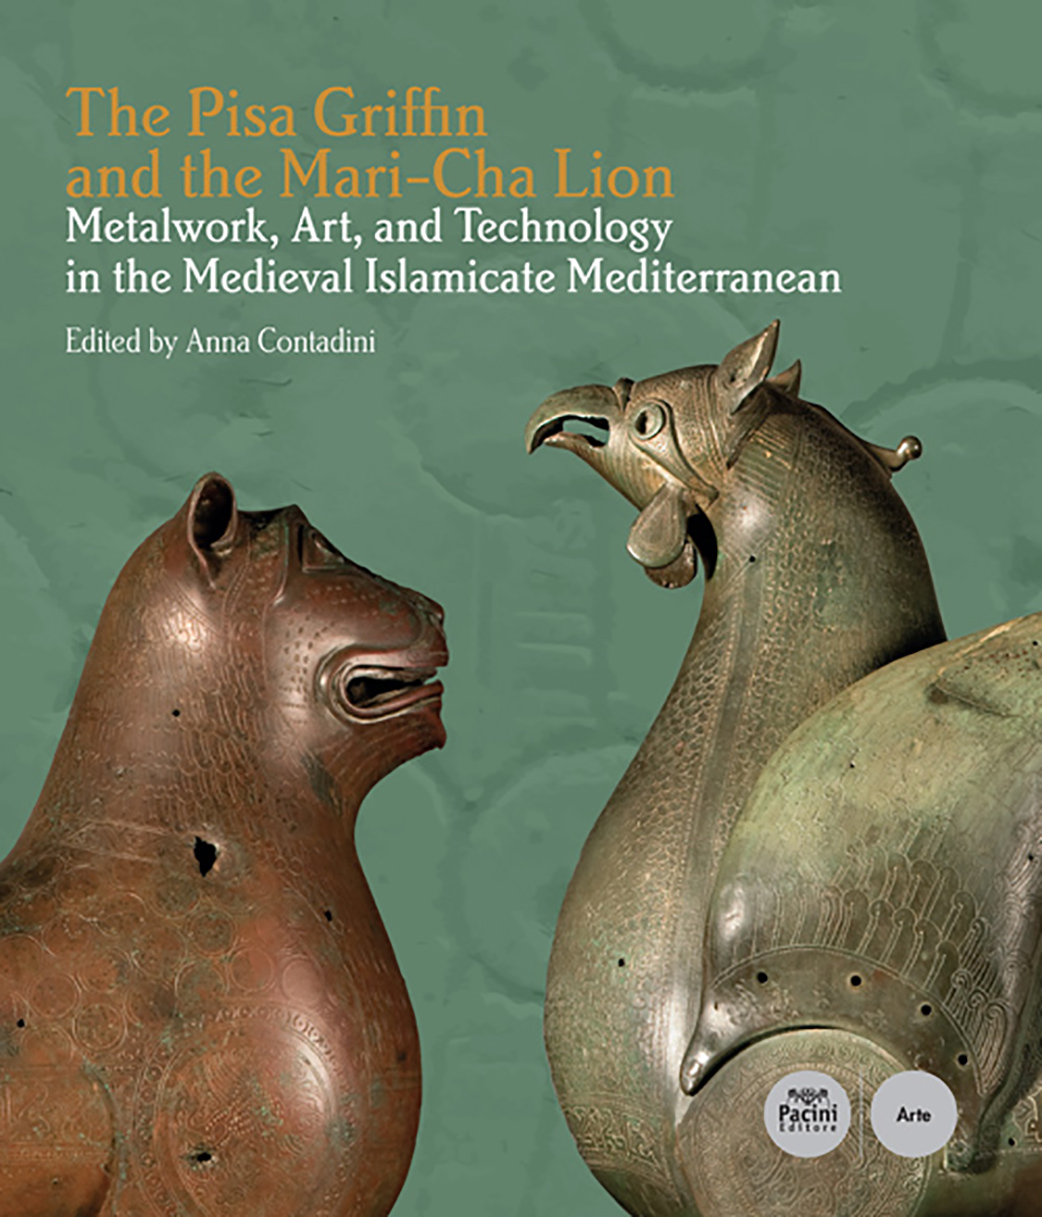 The Circulation of Middle Eastern Objects in the pre-modern period and their interpretation within new cultural settings